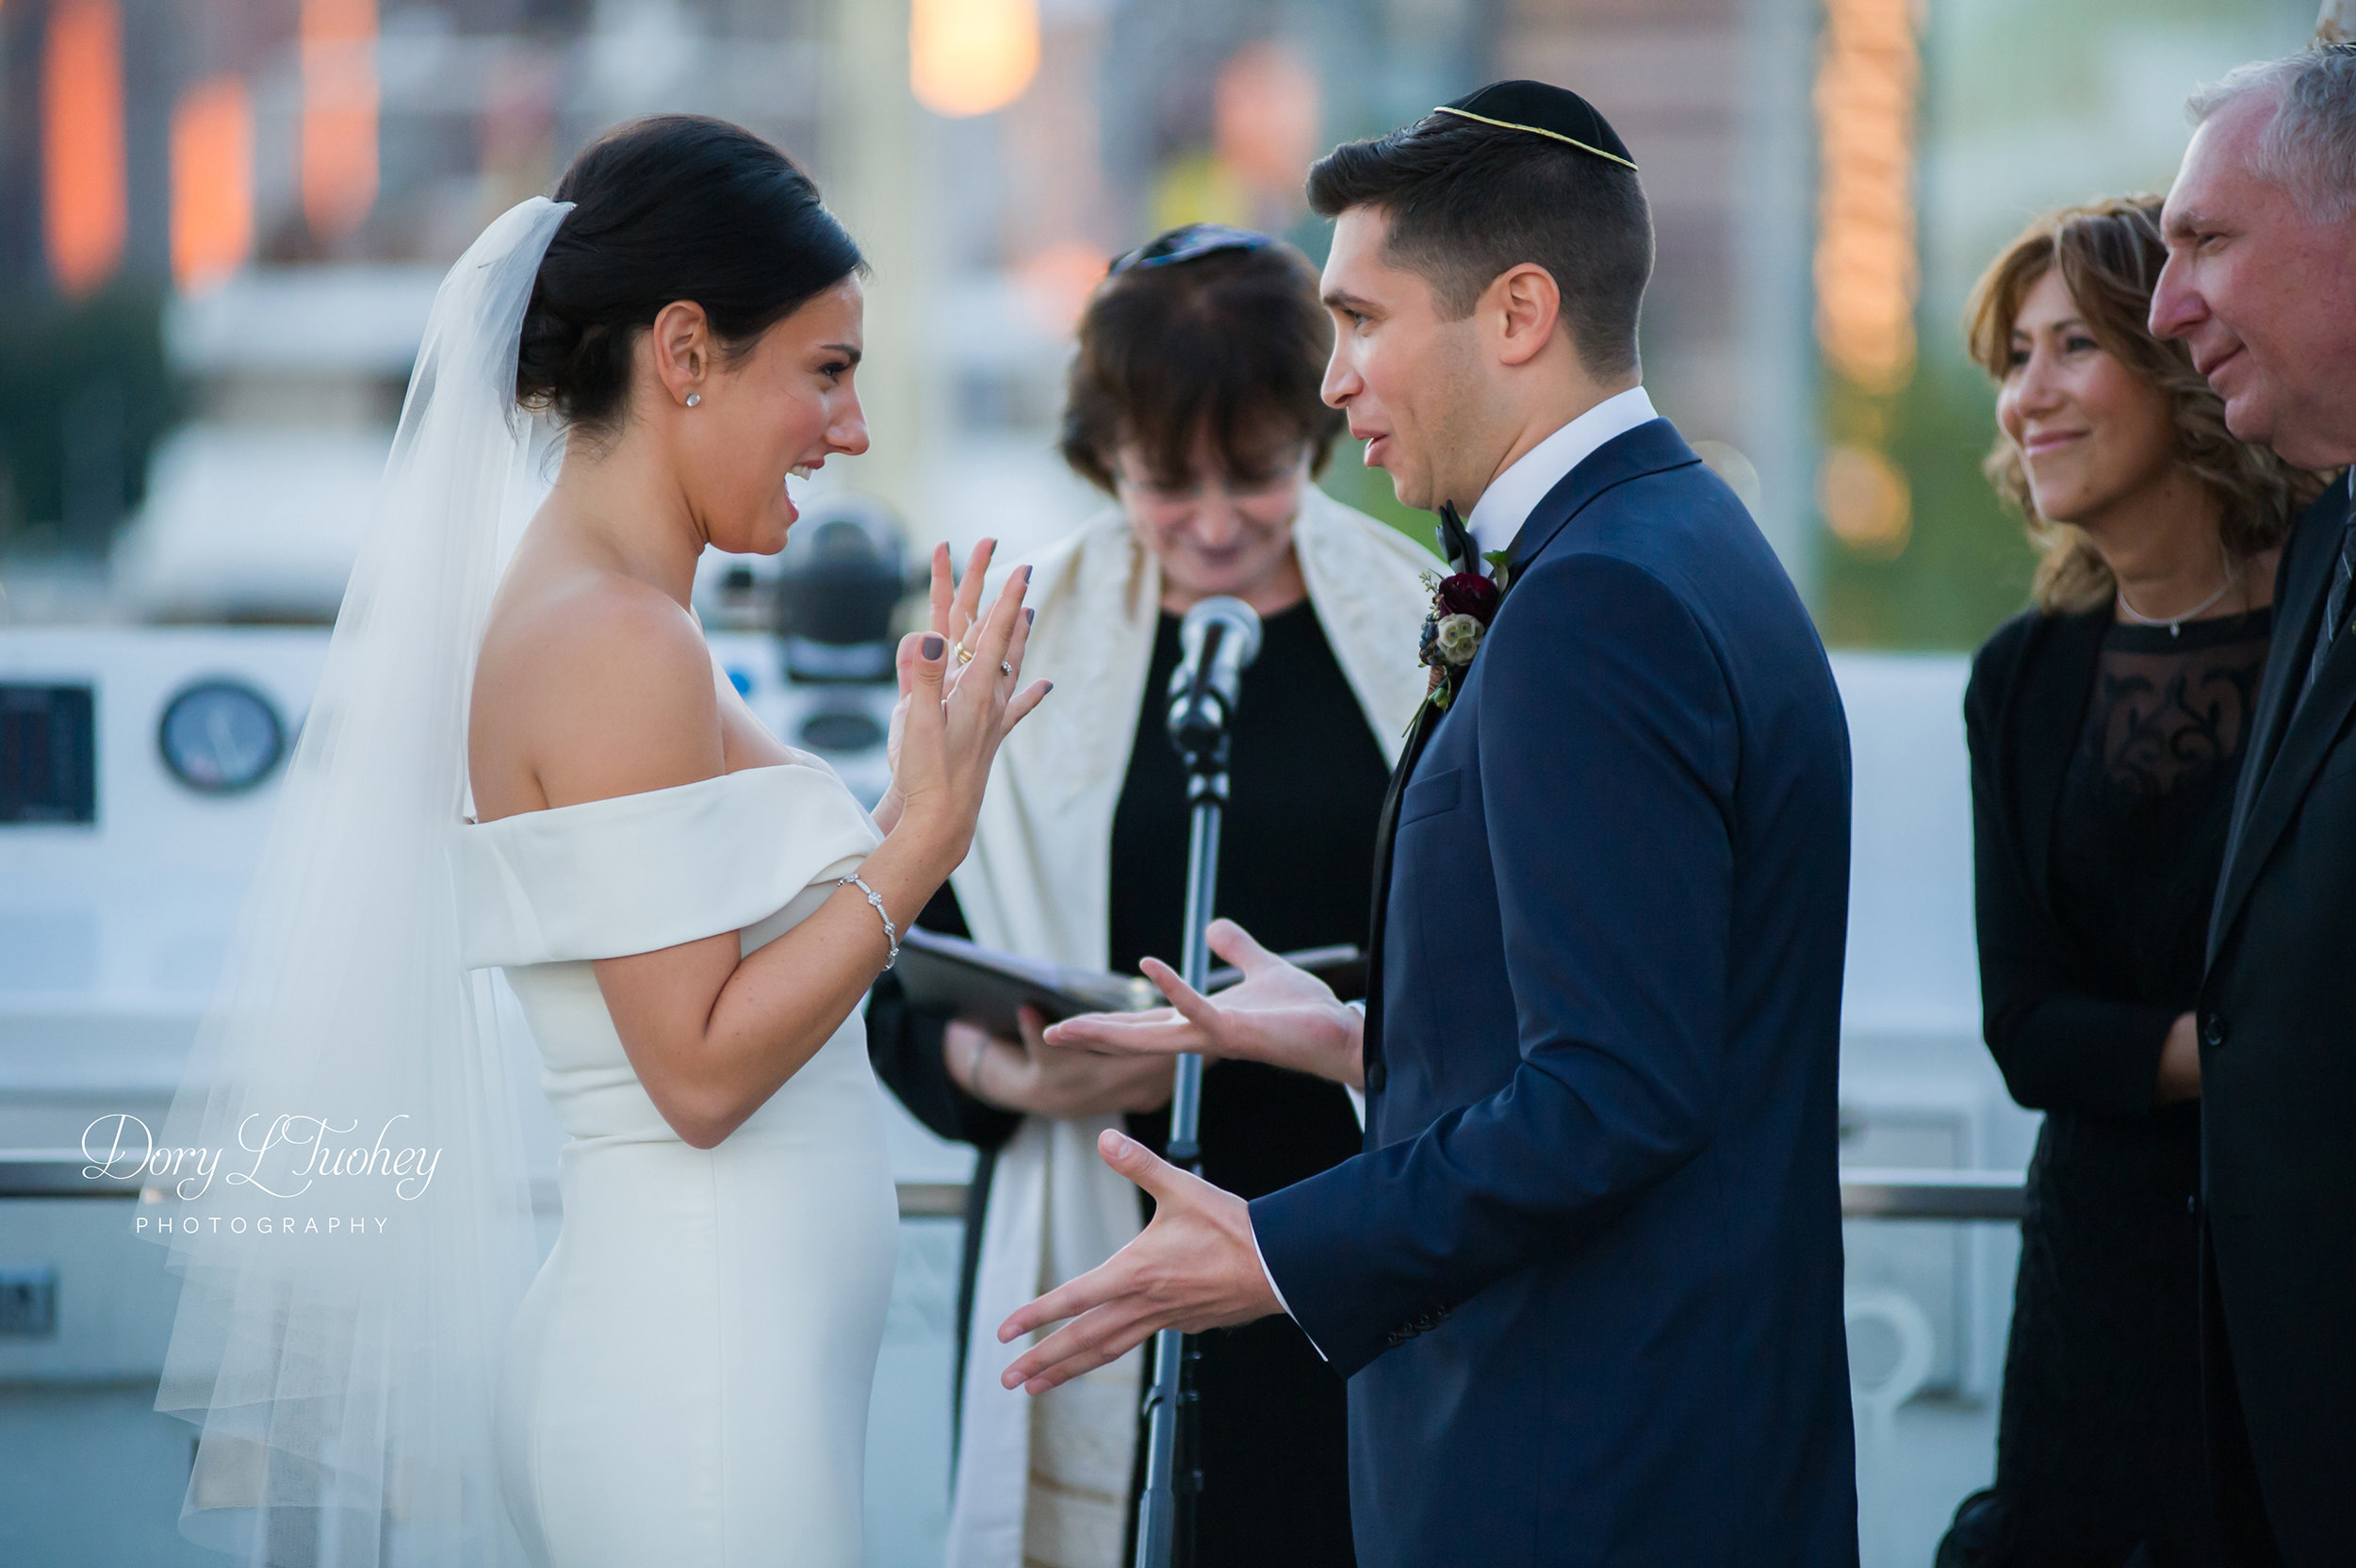 Dory_chicago_wedding_navy_pier_boat_cruise_skyline_sunset_jewish_bride_groom_21.jpg